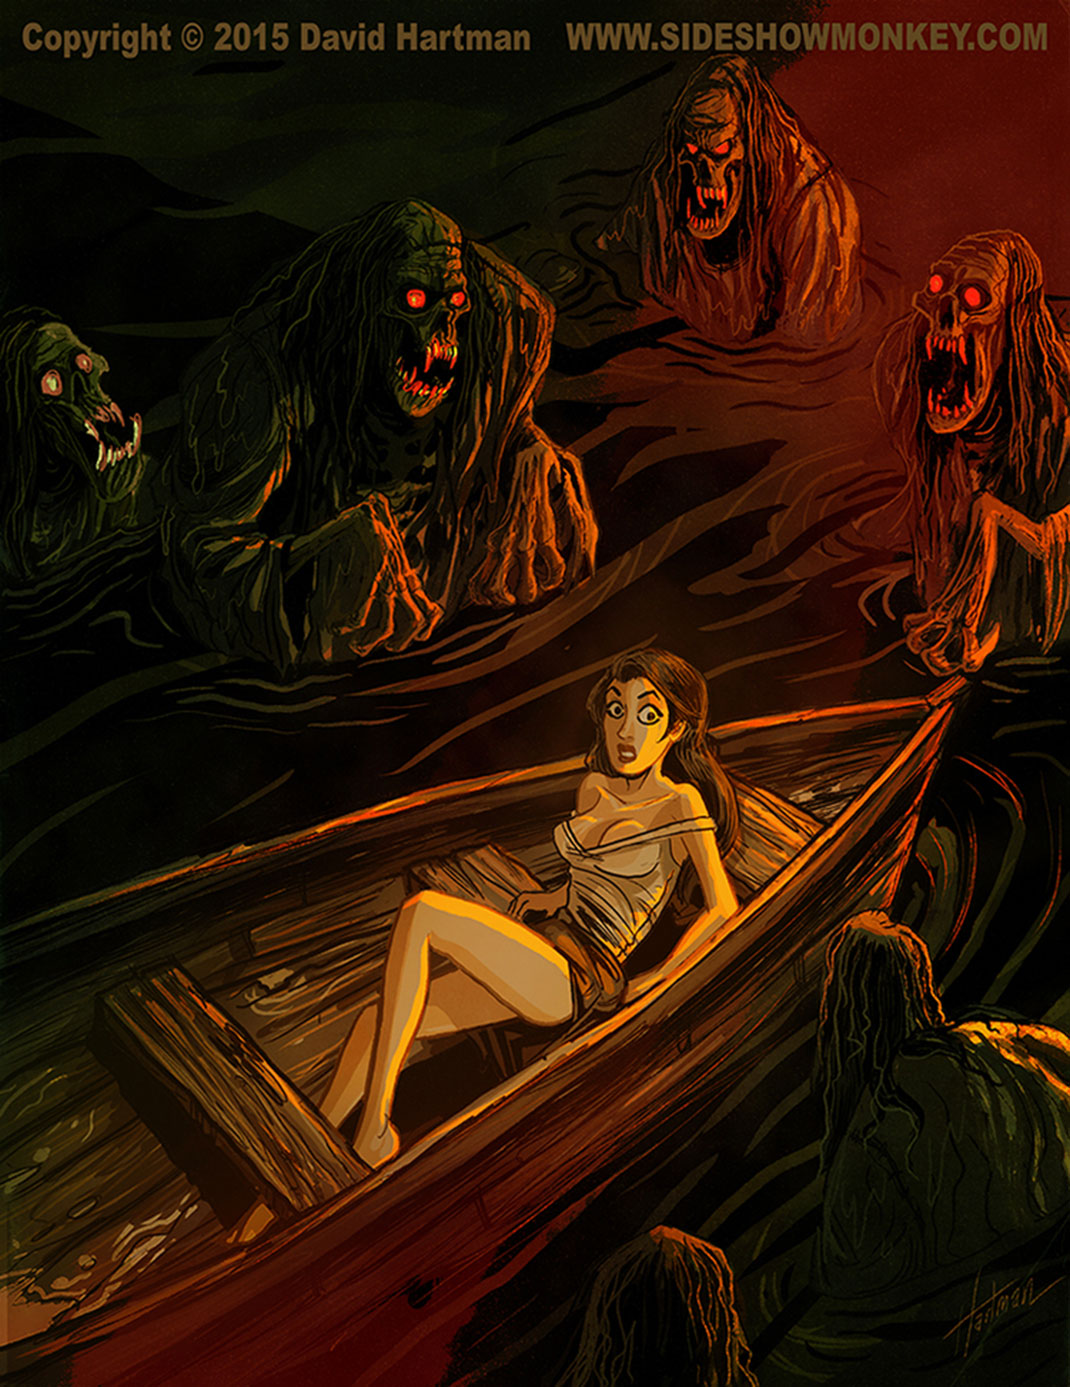 blood_boat_by_hartman_by_sideshowmonkey-d9as3w4